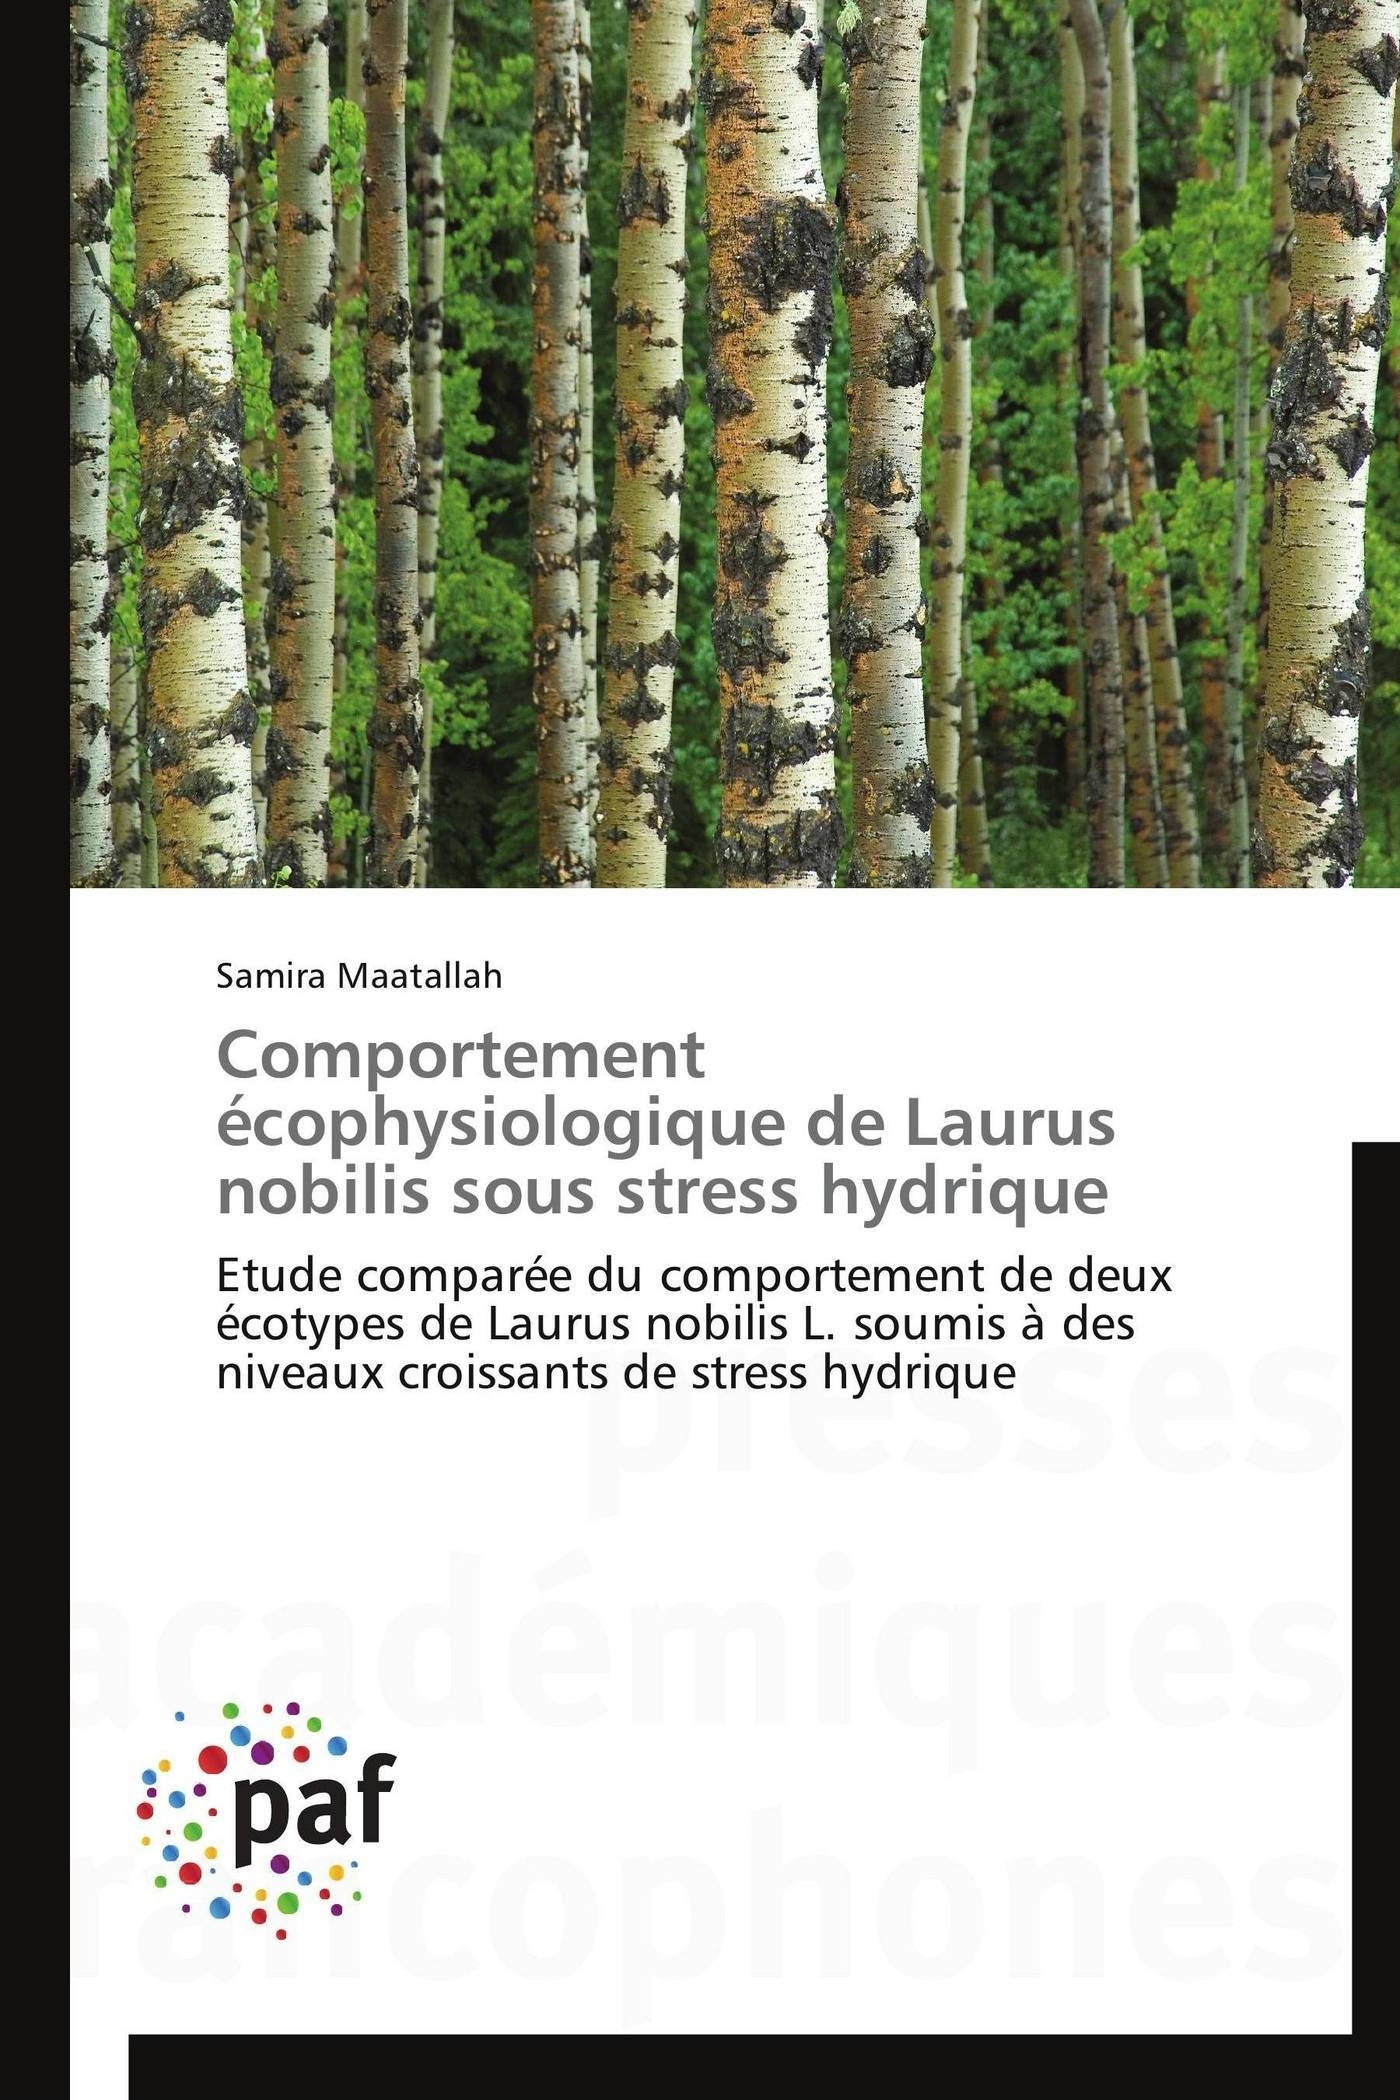 COMPORTEMENT ECOPHYSIOLOGIQUE DE LAURUS NOBILIS SOUS STRESS HYDRIQUE